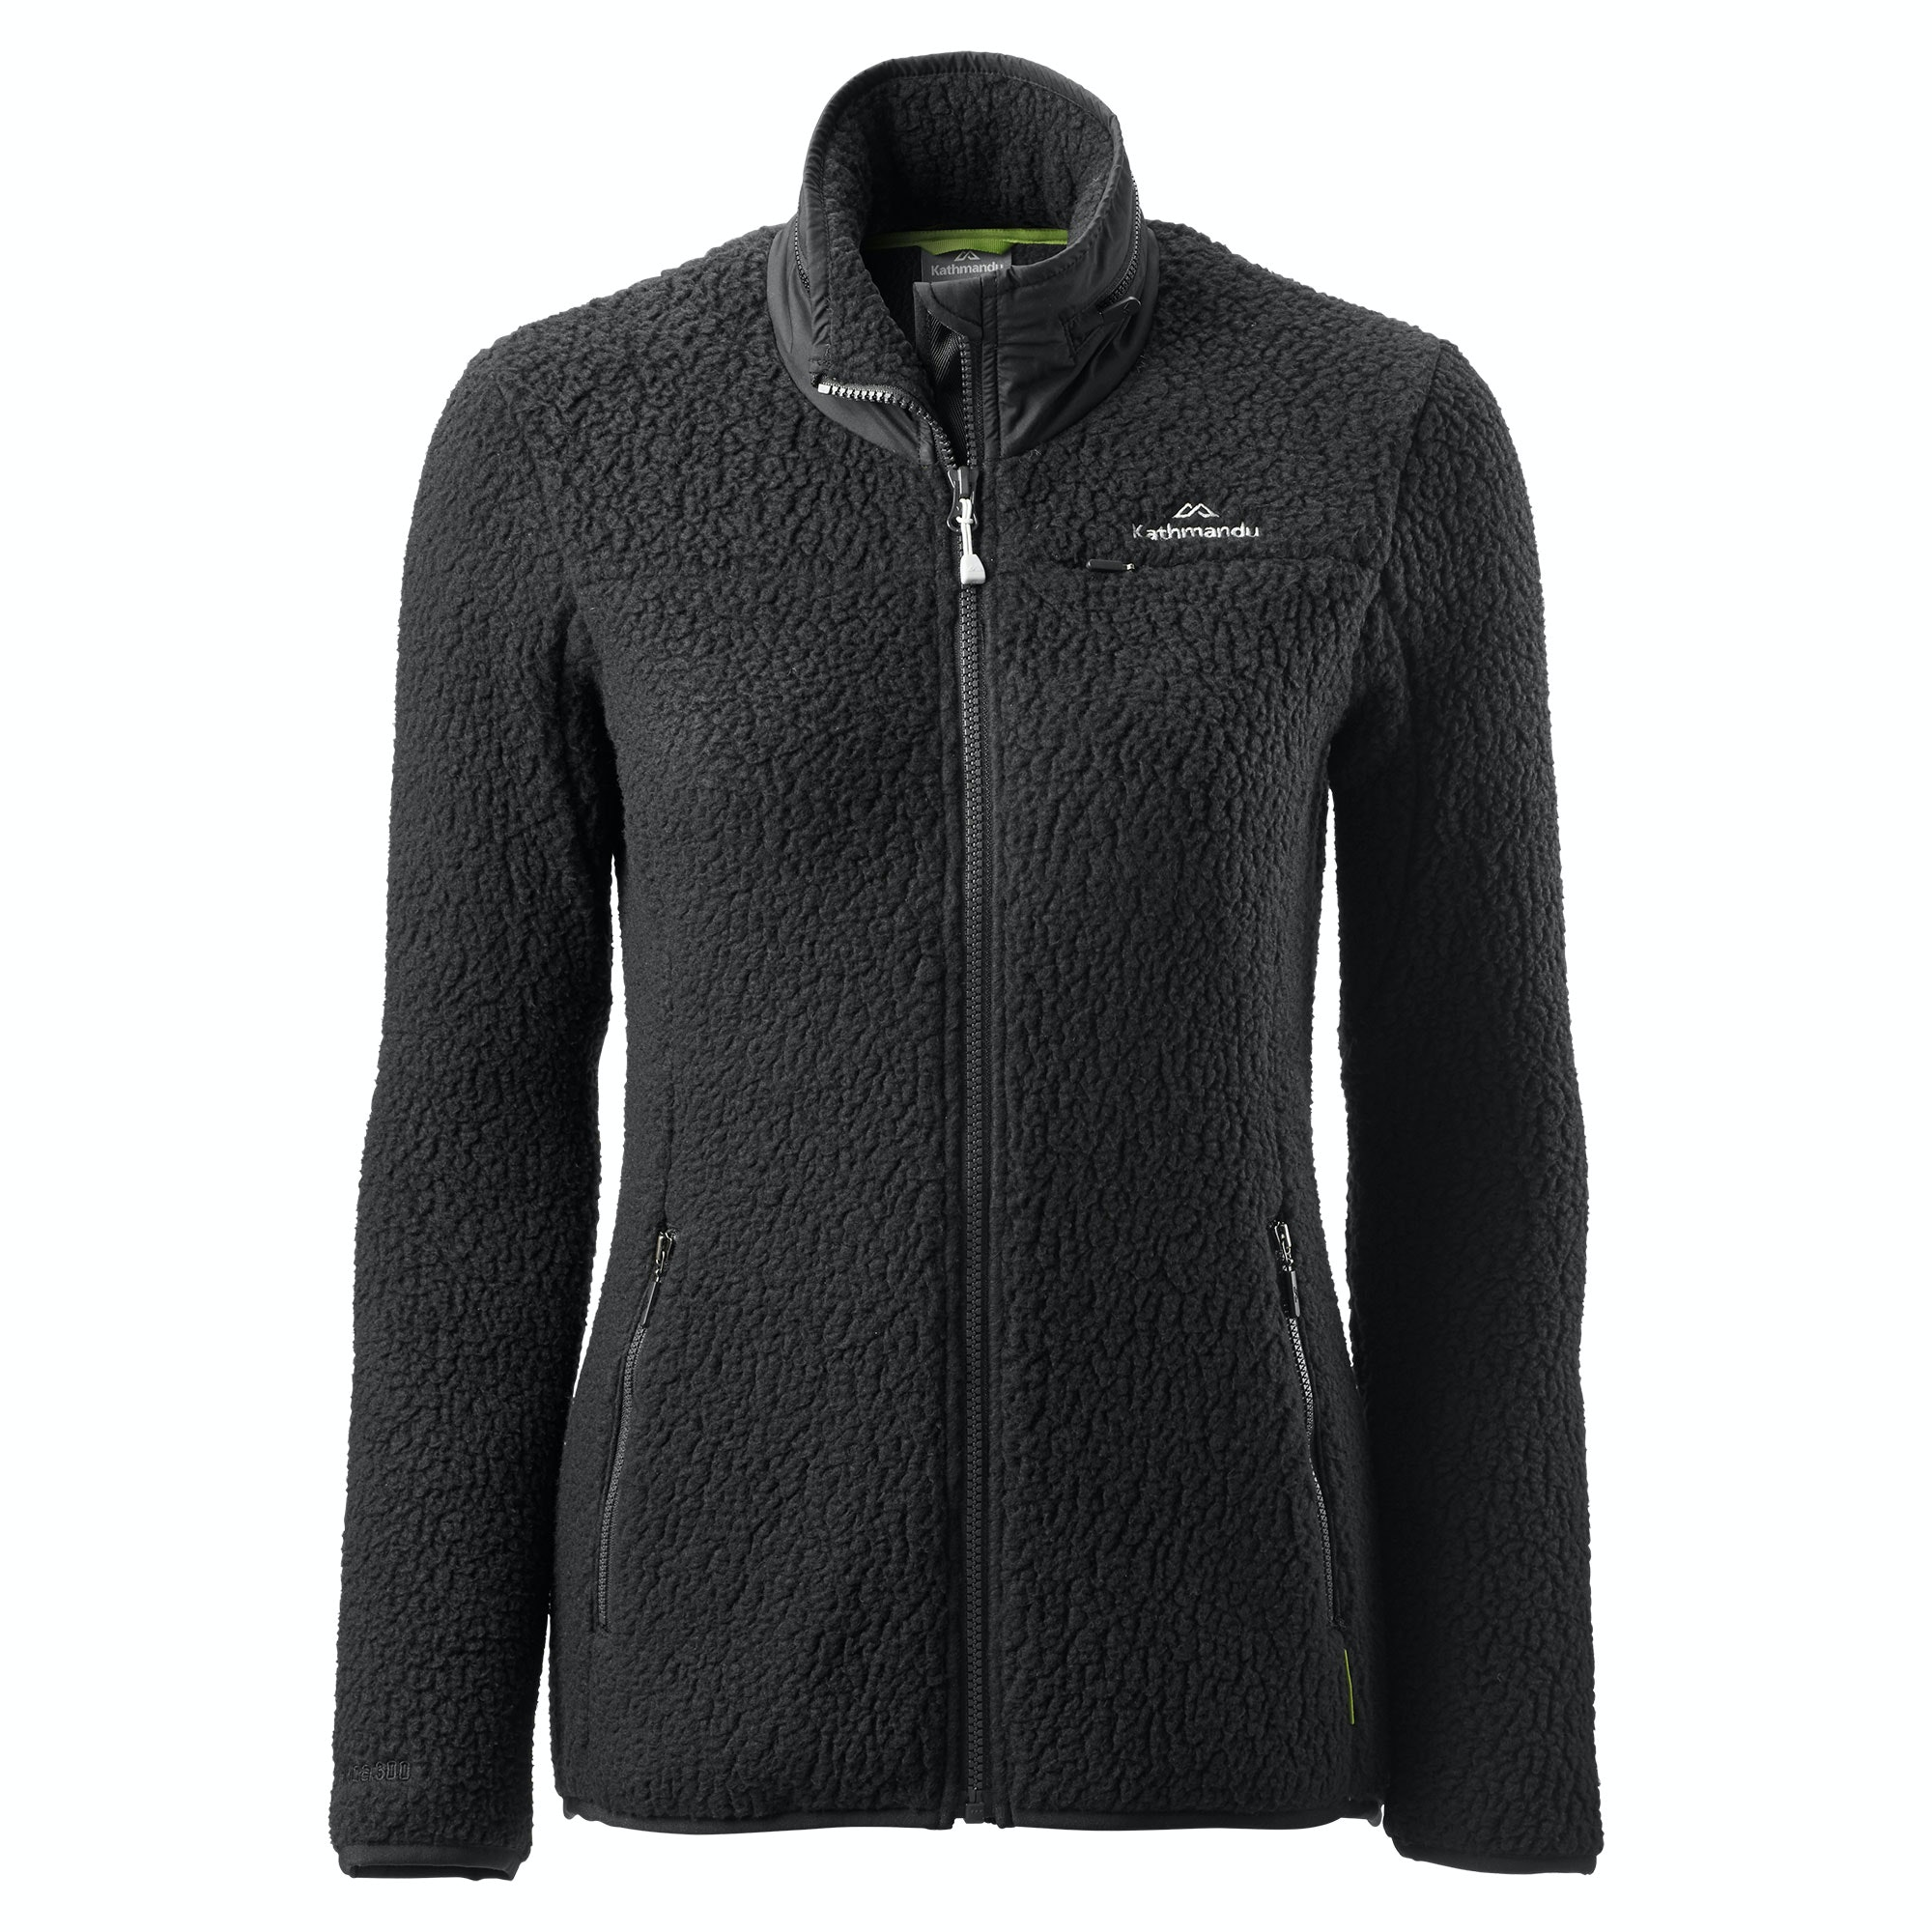 Baffin Island Women's Fleece Jacket